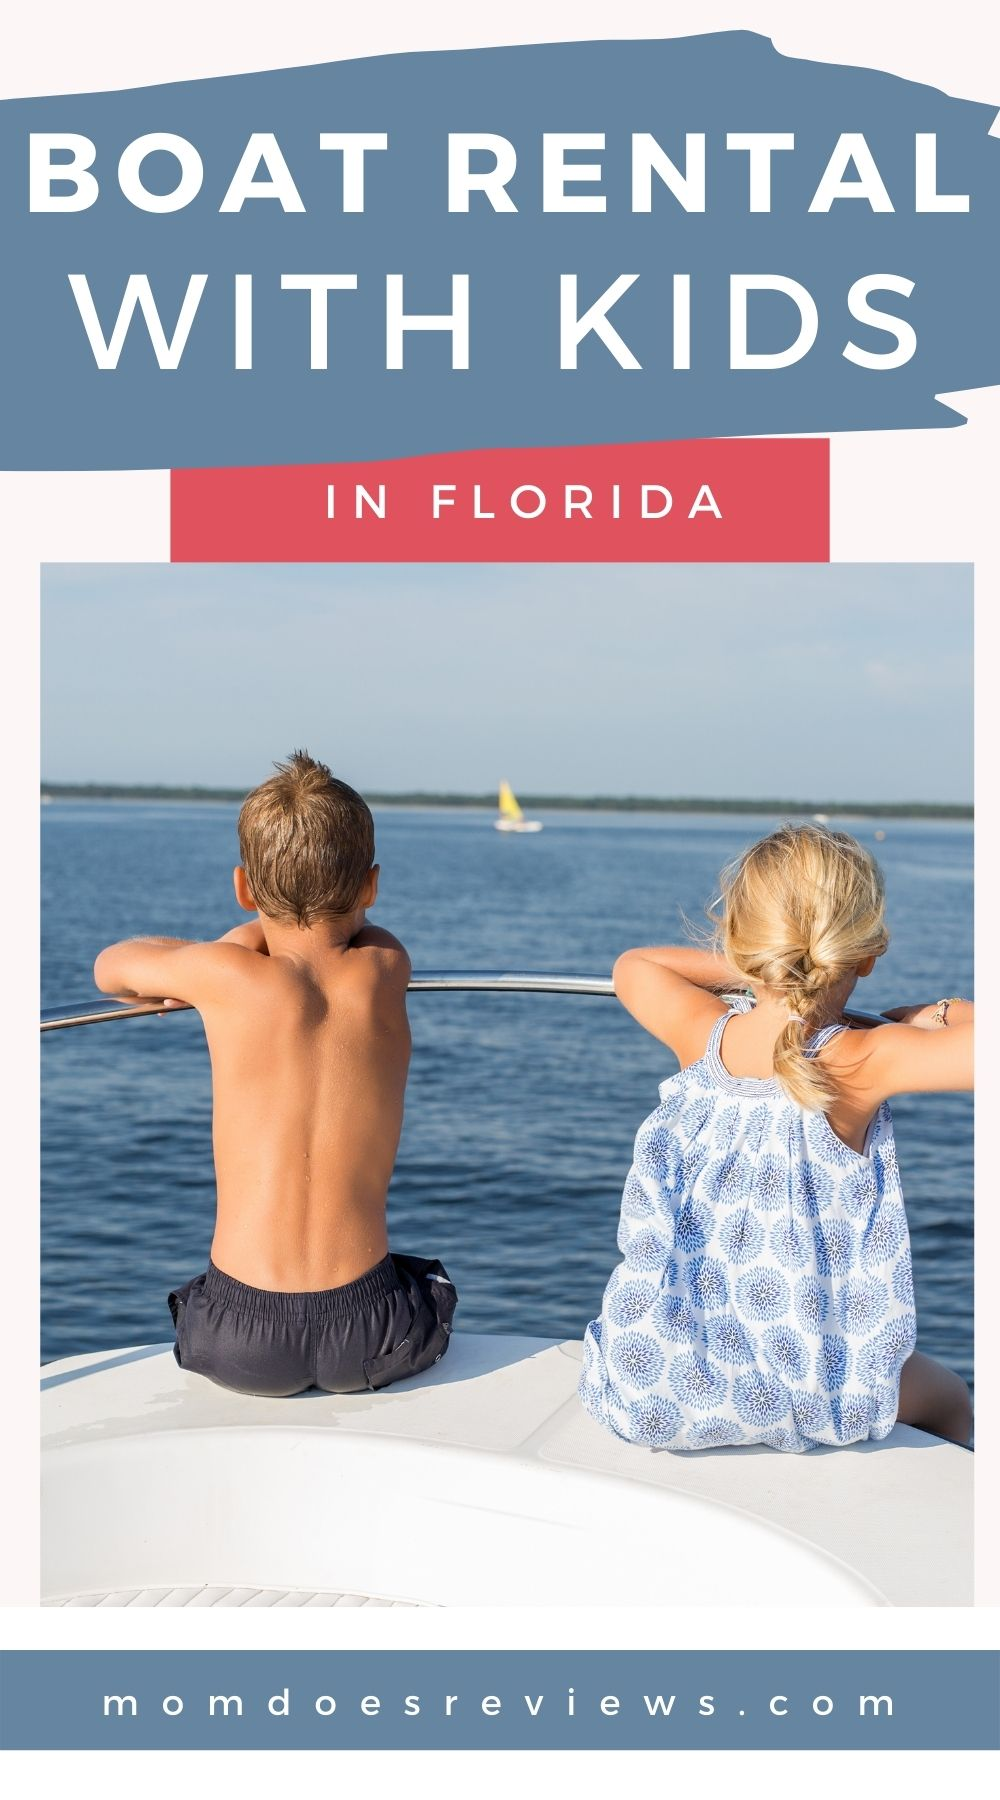 Set sail with the kids on board a boat rental in Florida